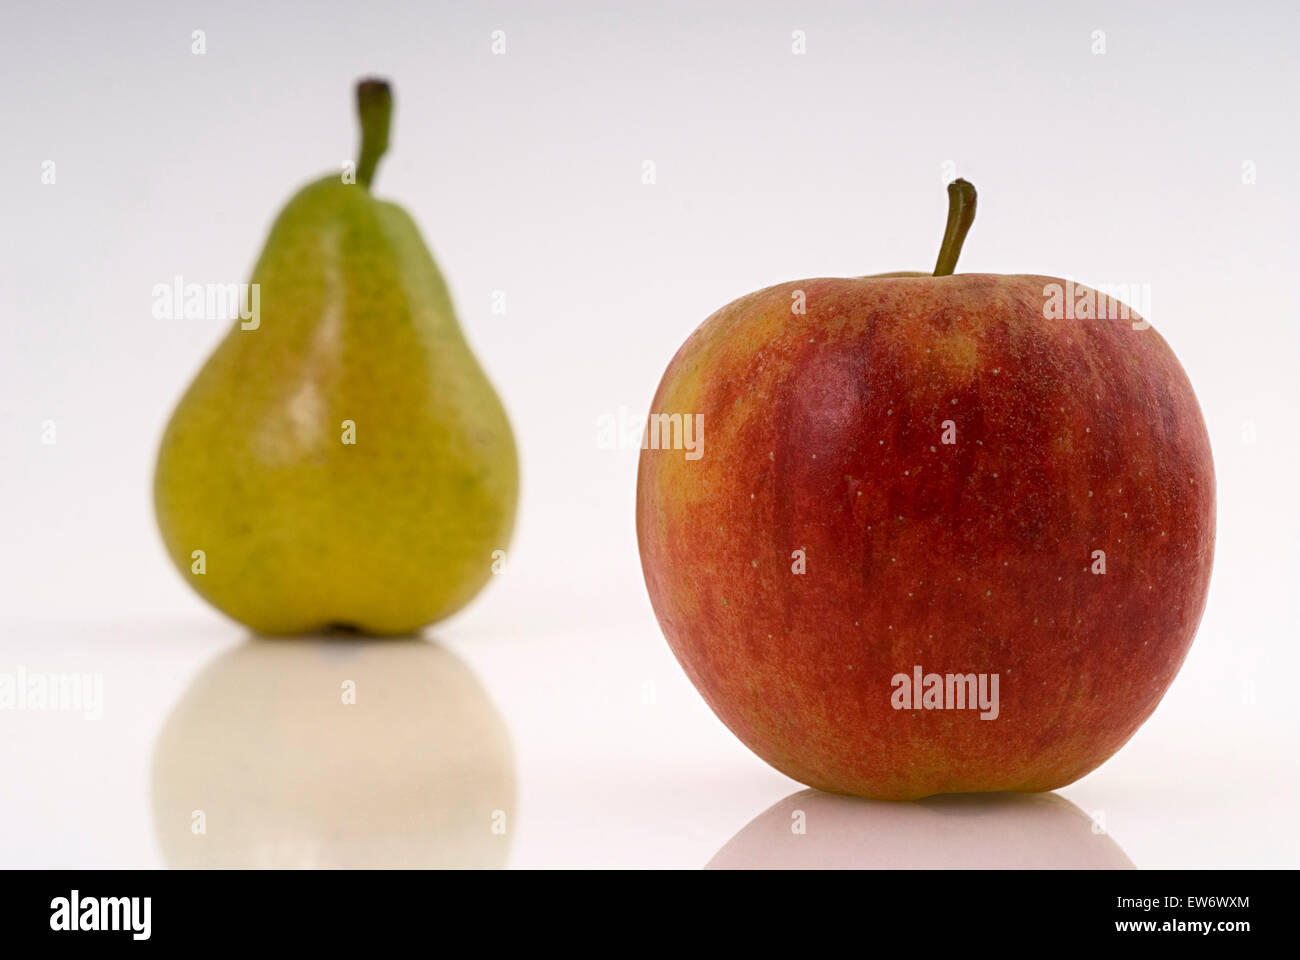 Red apple and green pear food fruit fruits studio - Stock Image